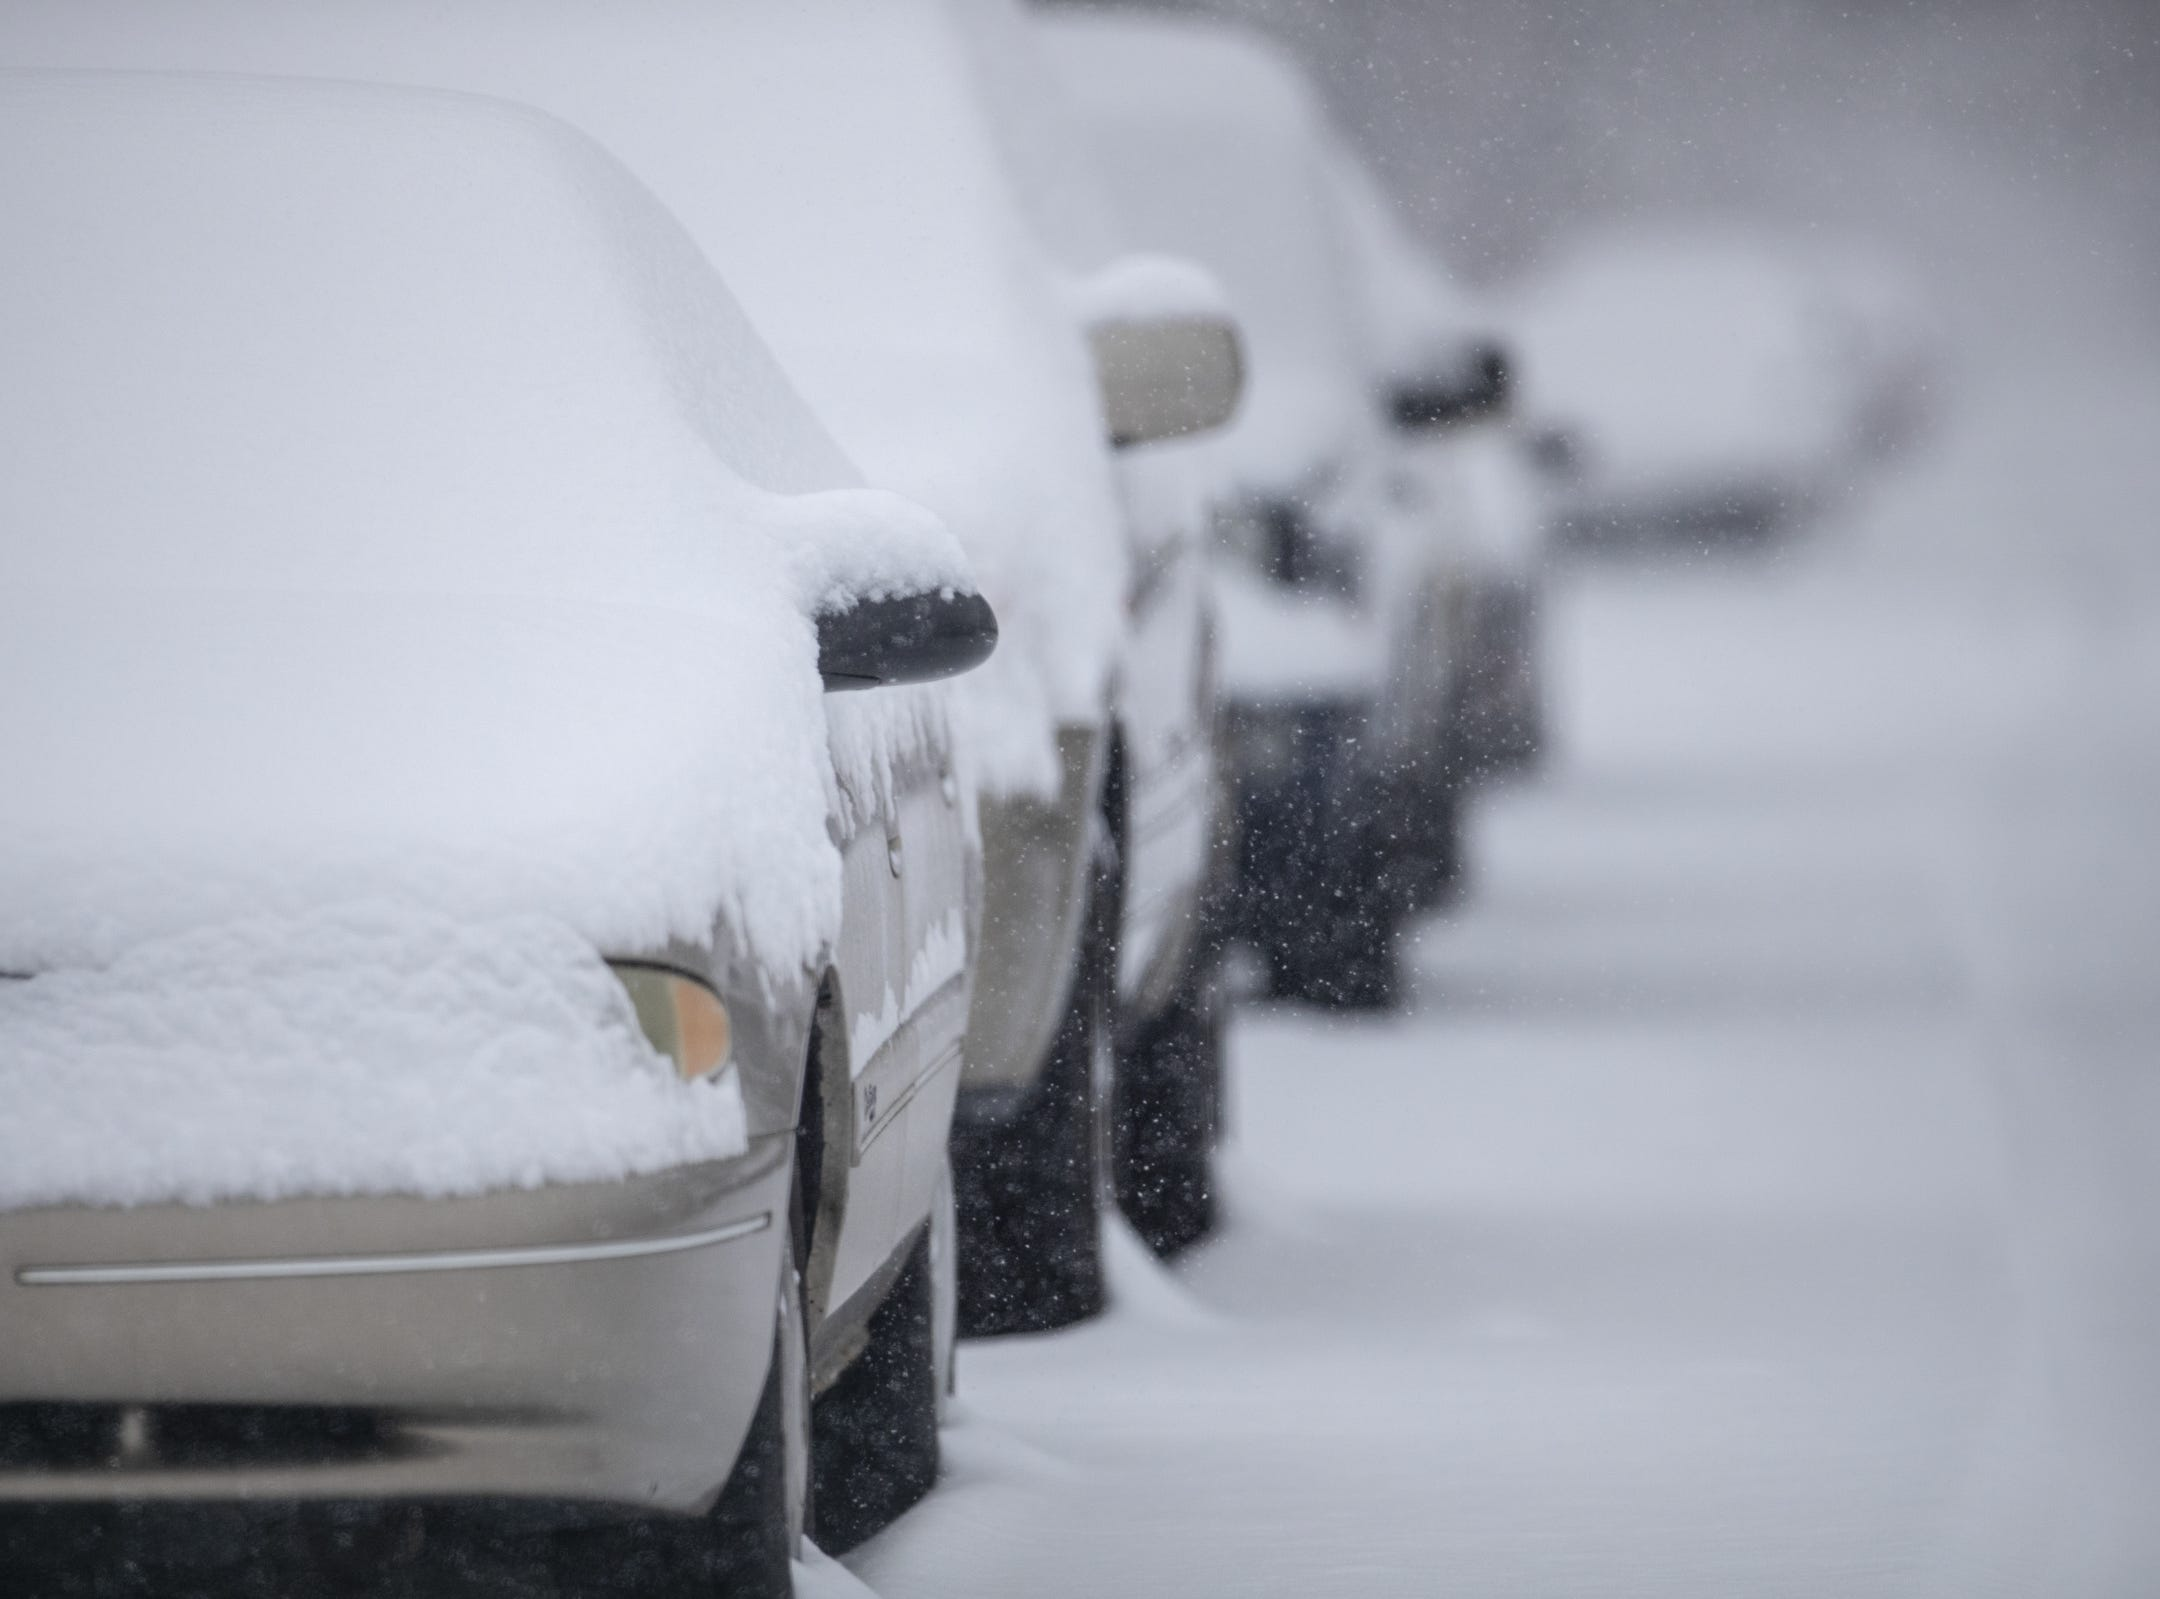 Snow-covered cars on the city's east side on a day where 5-7 inches of snow is expected to fall in Central Indiana, Indianapolis, Saturday, Jan. 12, 2019.